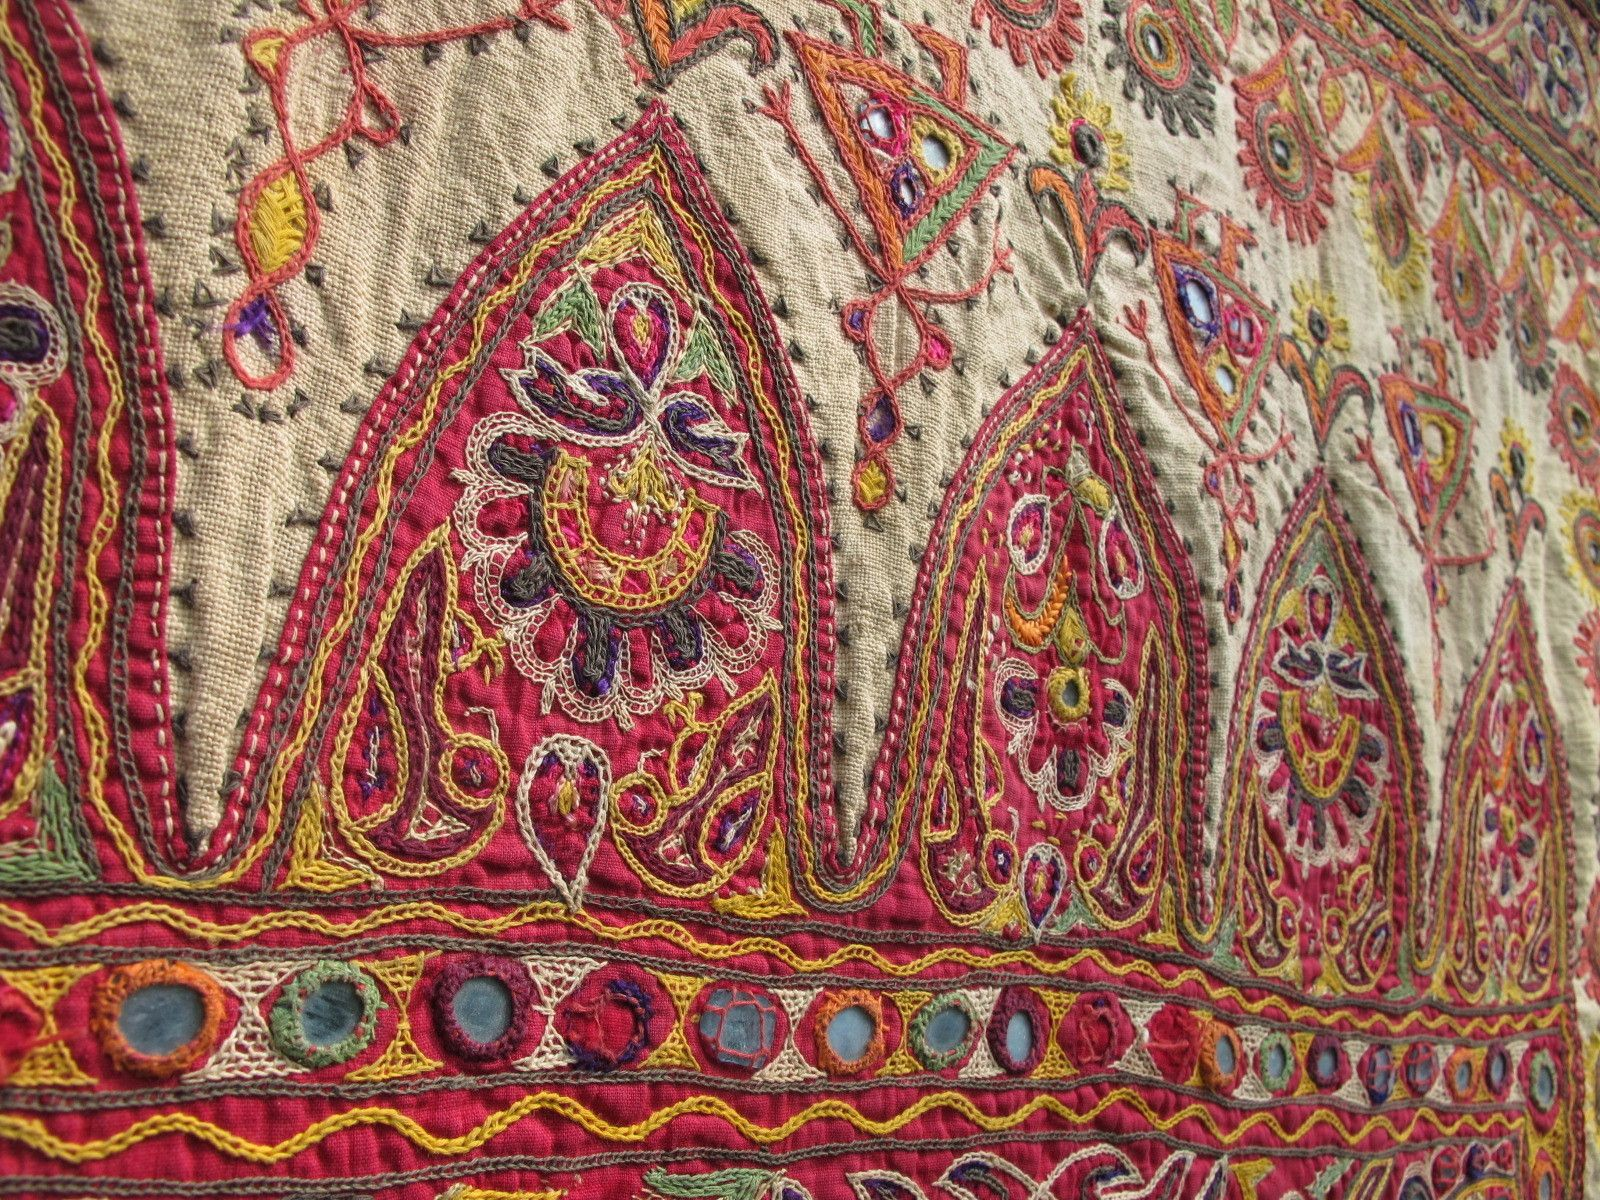 Indian hindu kutch embroidery probably from the late s to